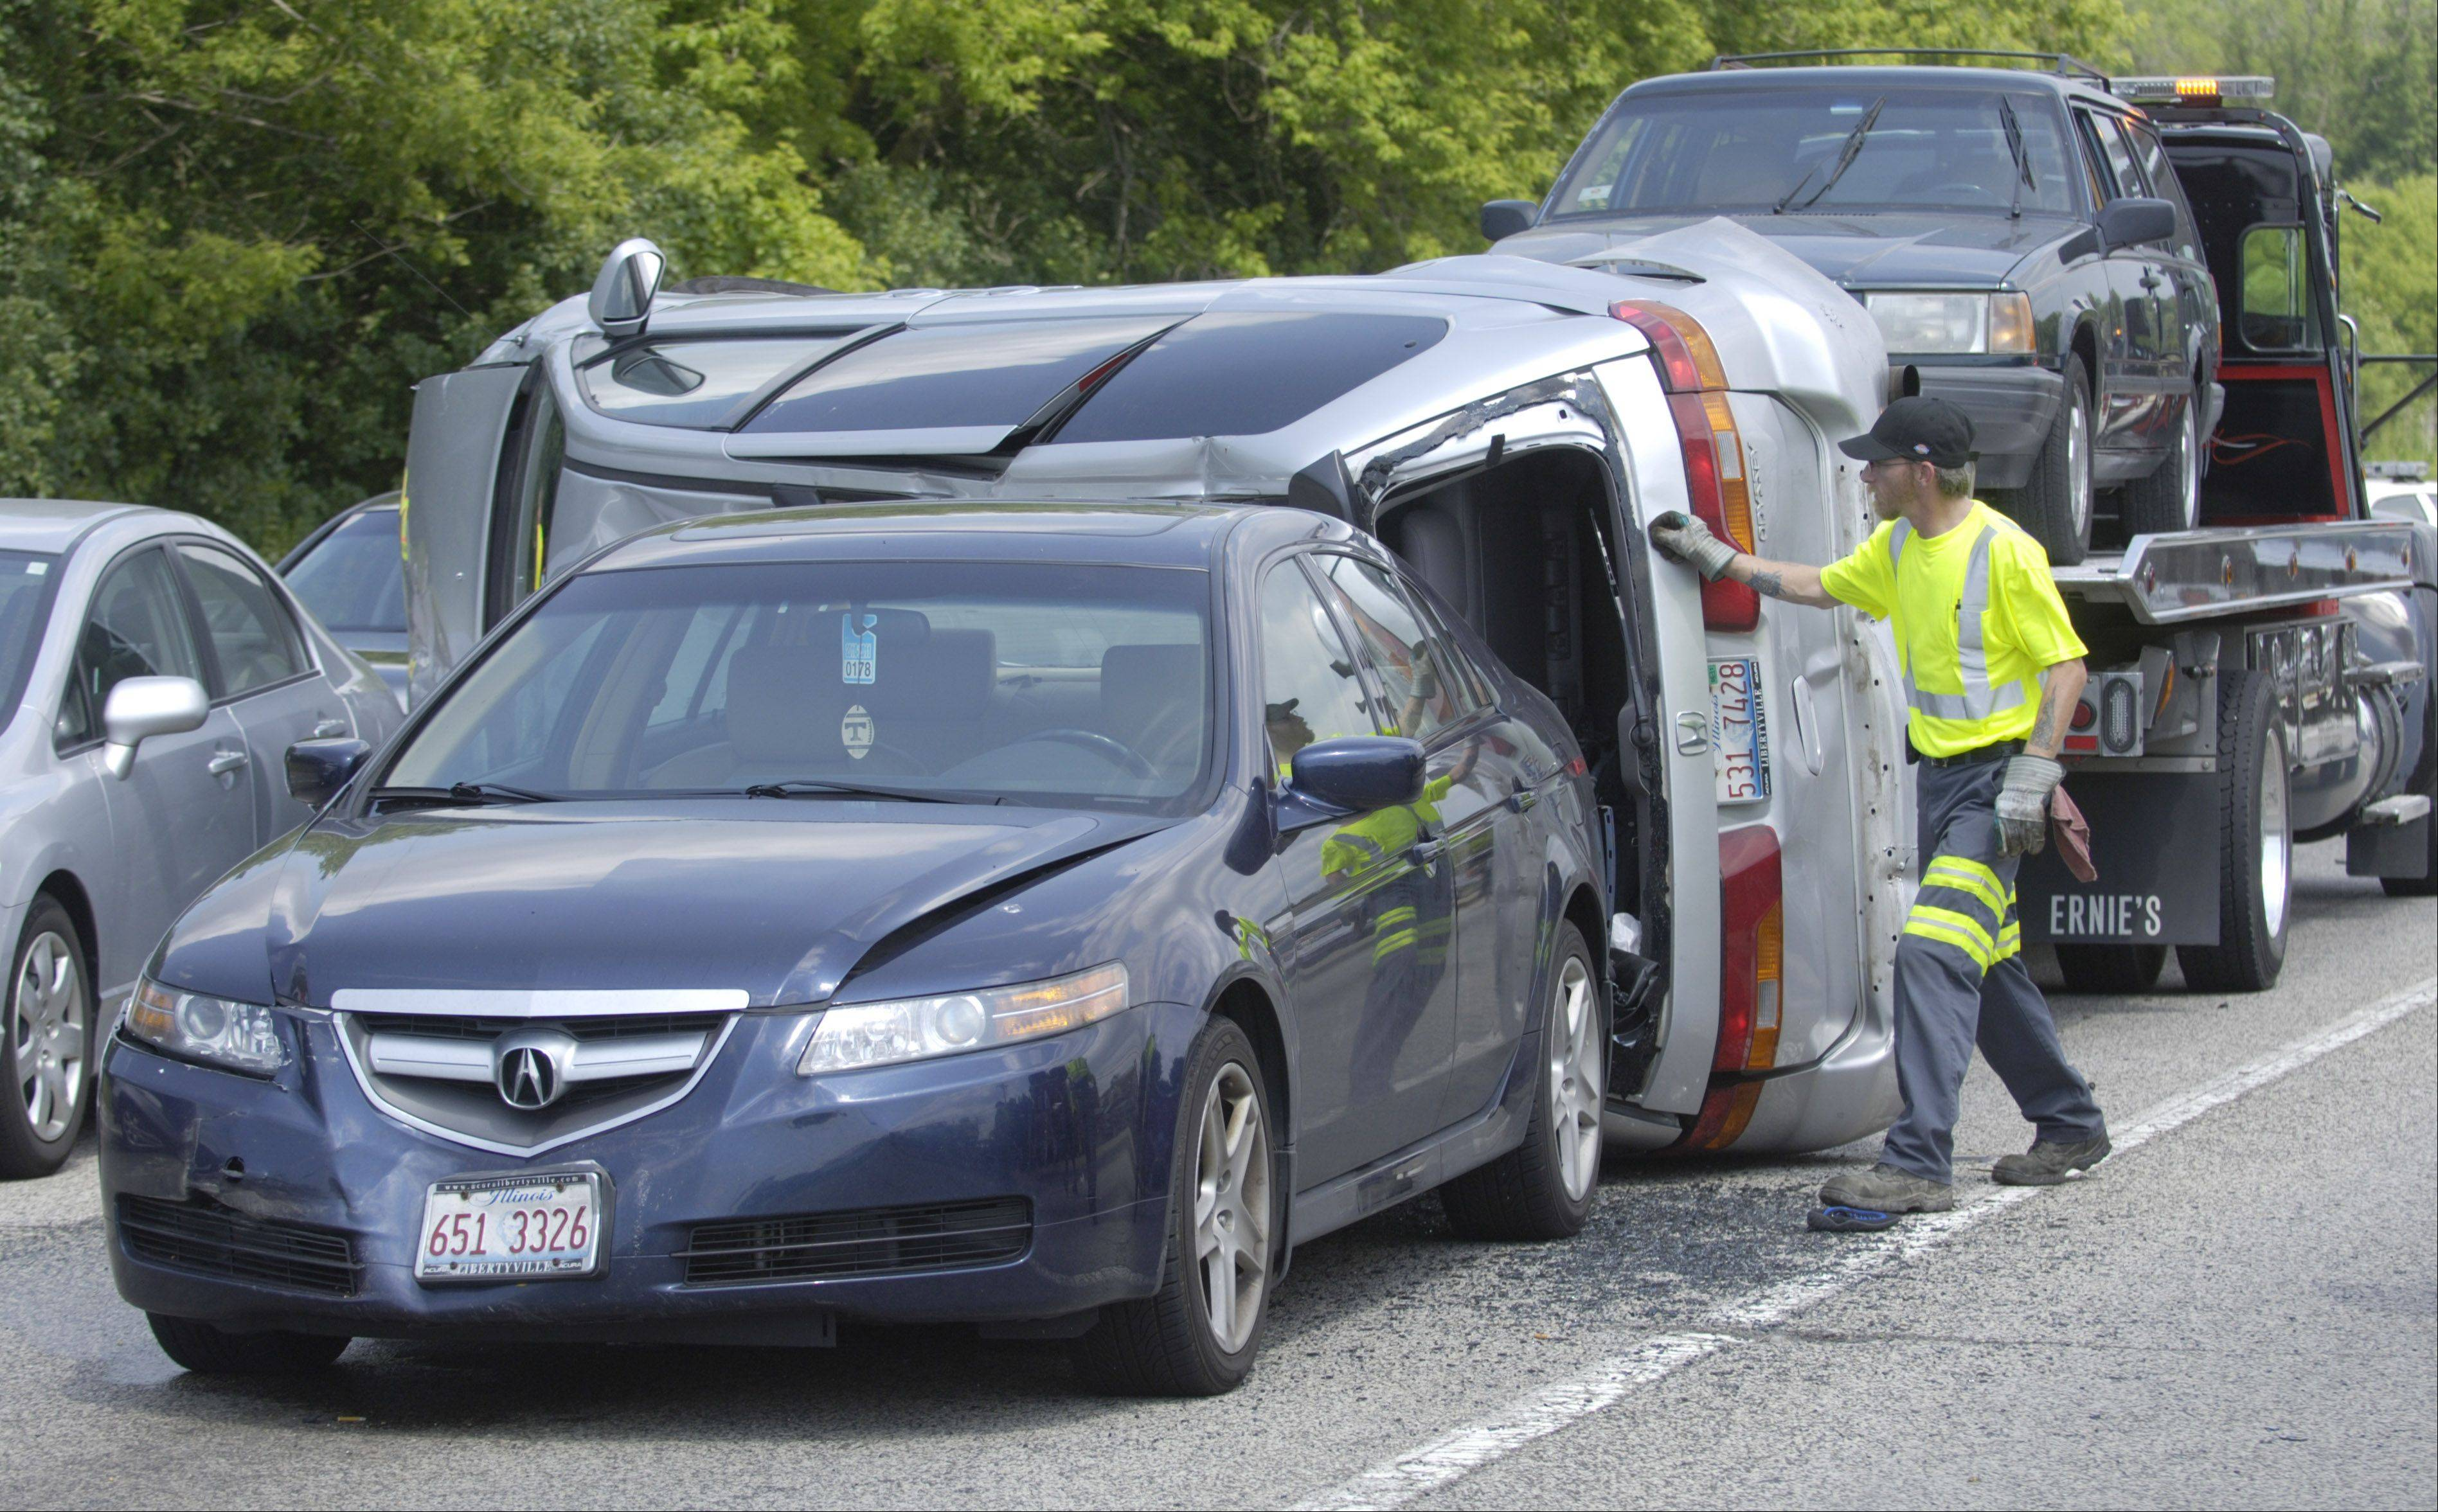 Seven vehicles were involved in a crash at Route 60 and Milwaukee Avenue in Vernon Hills around 2 p.m. Saturday. Five people were taken to the hospital.